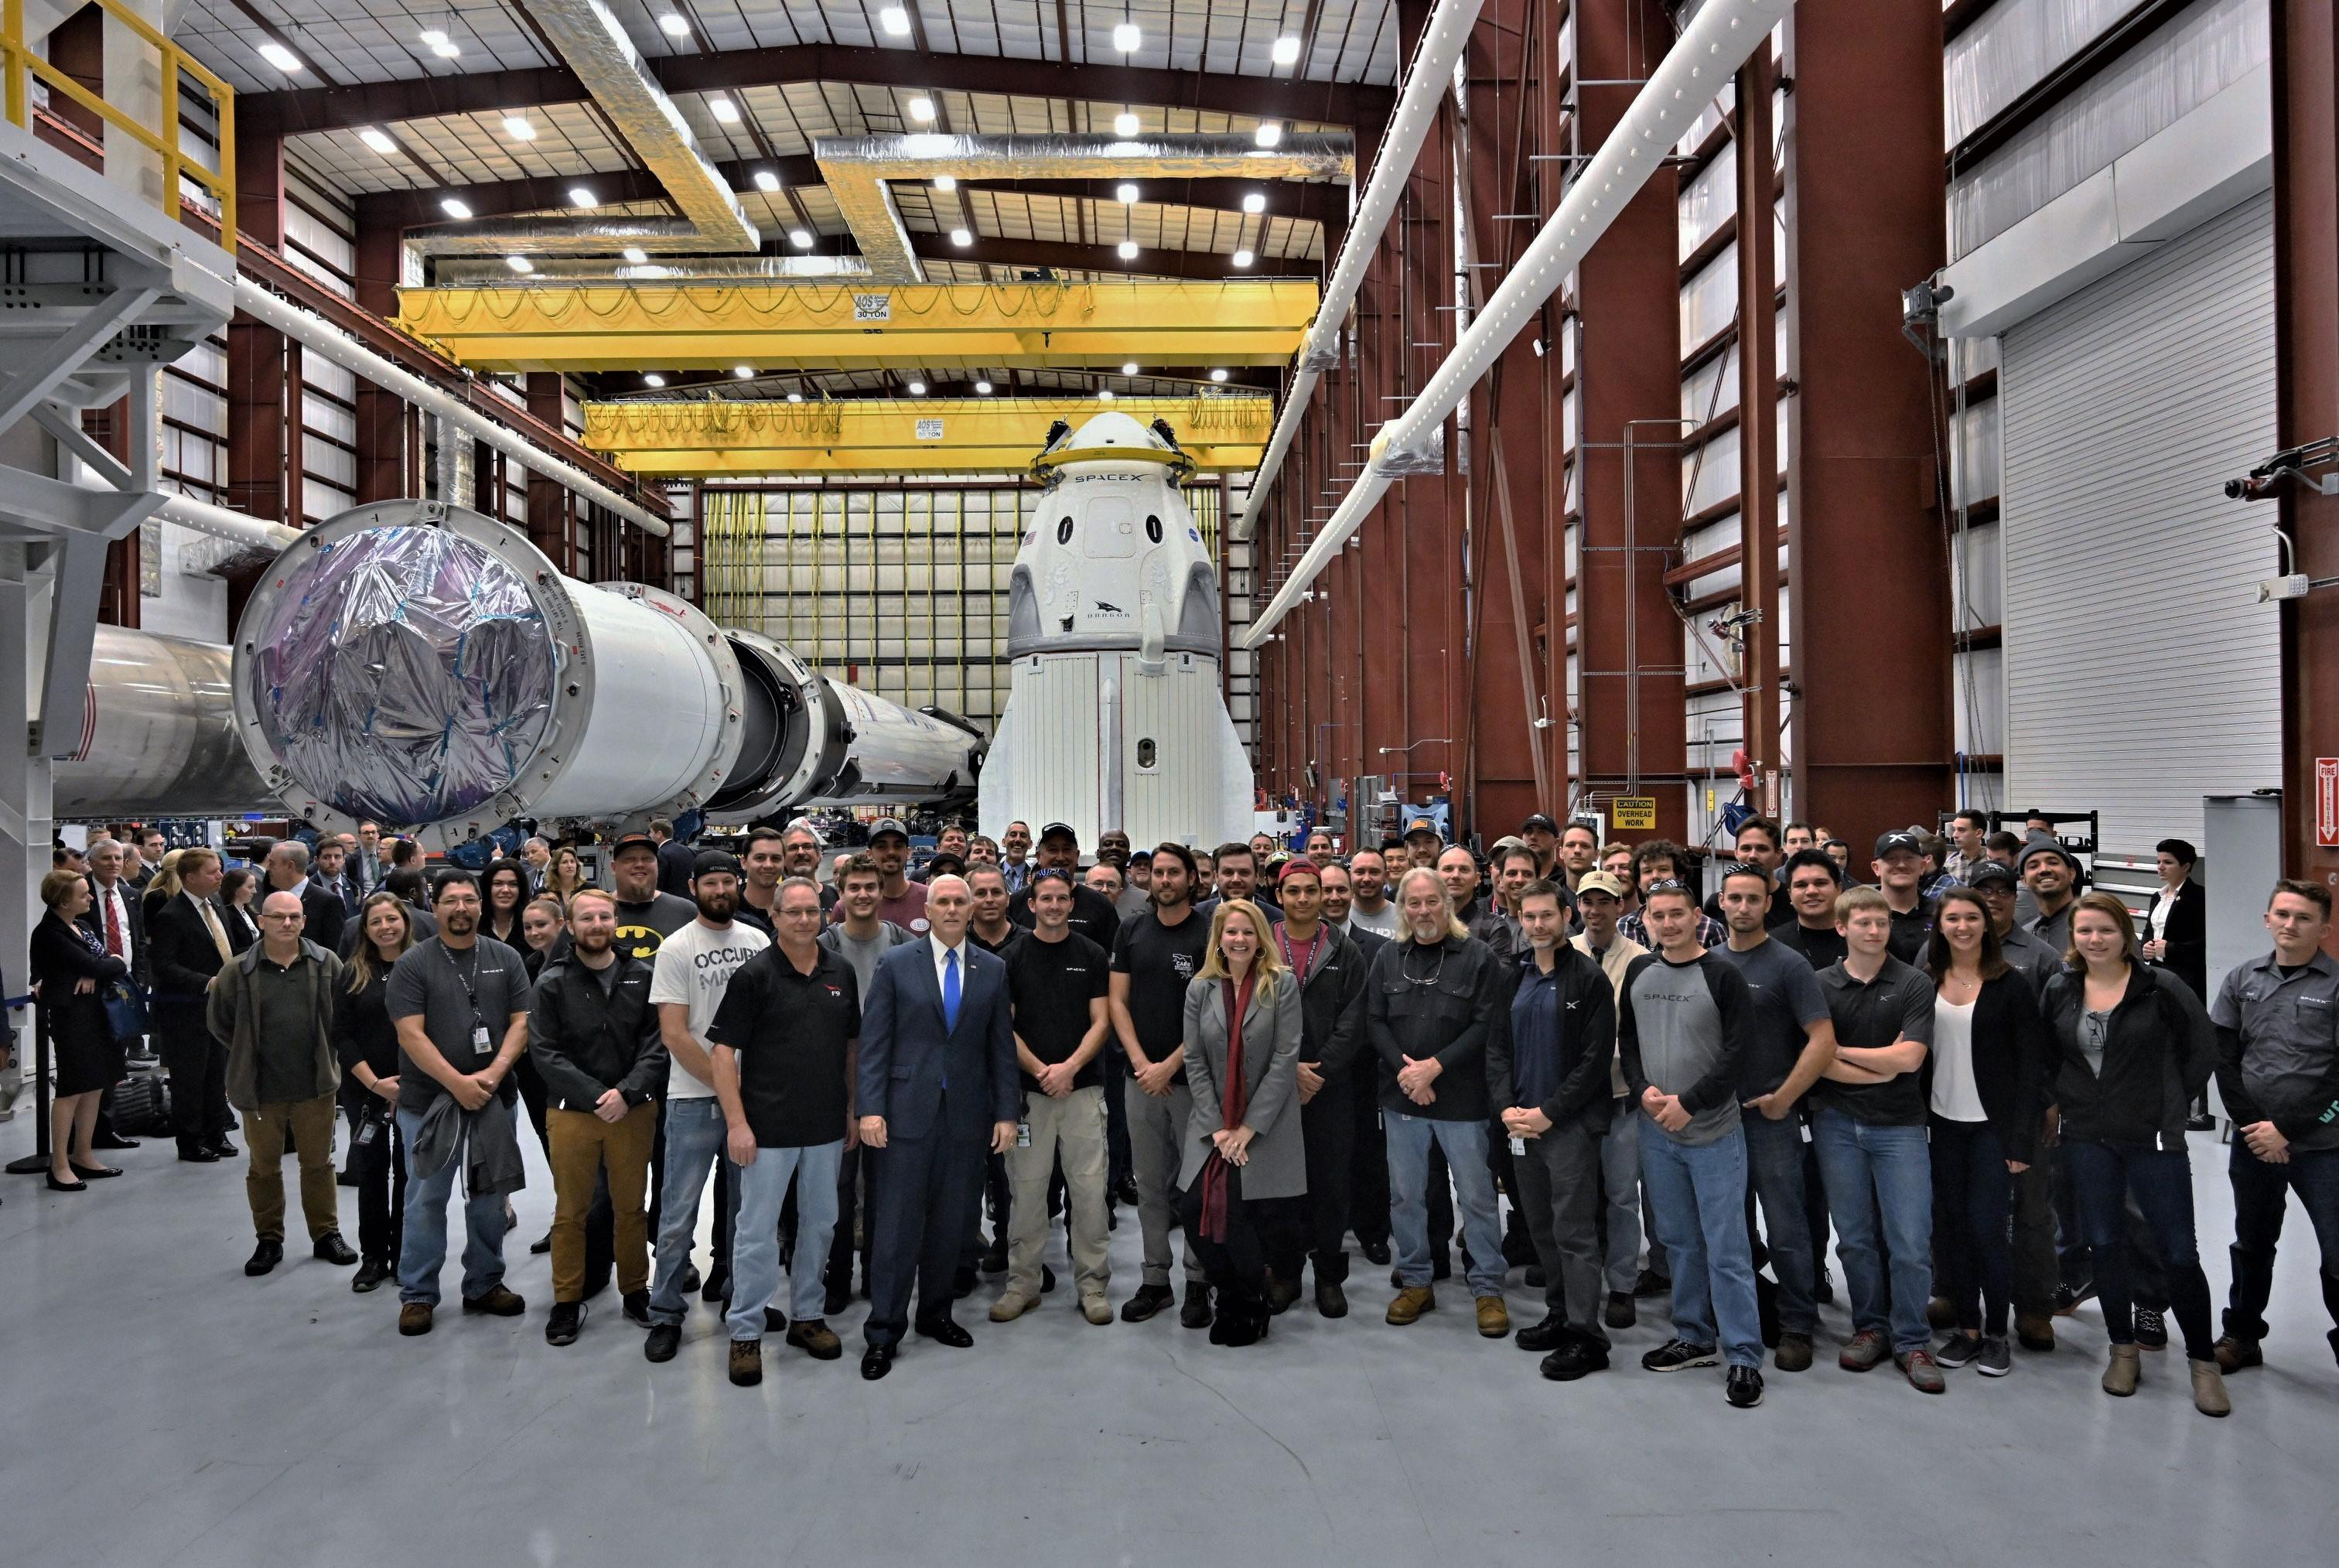 Crew Dragon DM-1 and Falcon 9 B1051 39A (SpaceX) 2